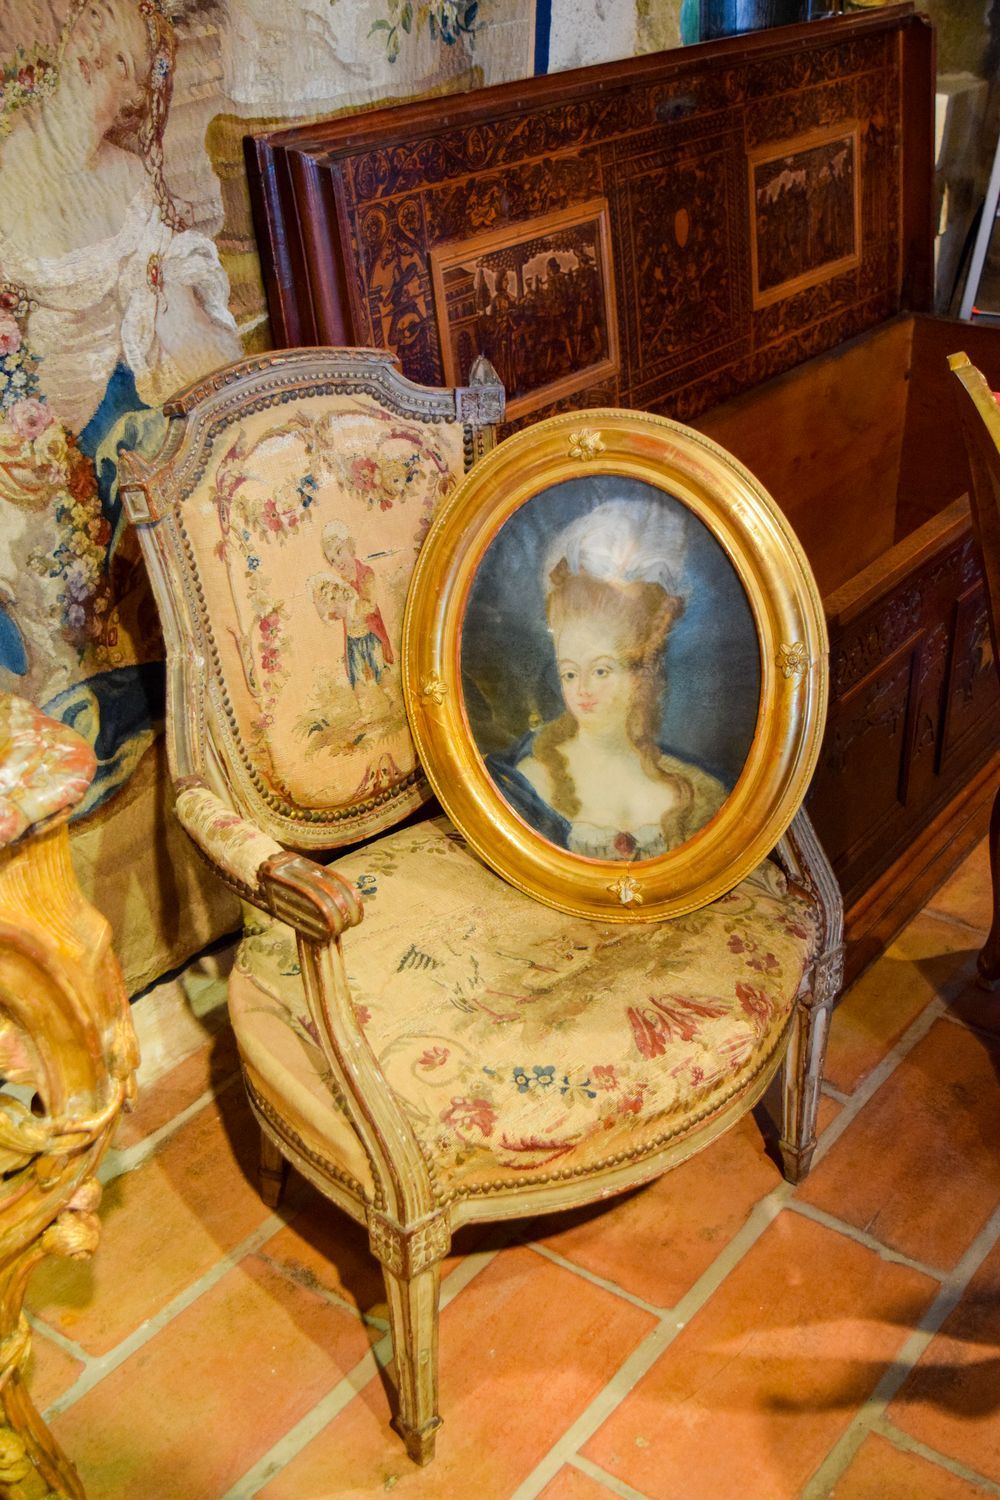 Antique Chair and Painting For Sale In L'Isle-Sur-La-Sorgue